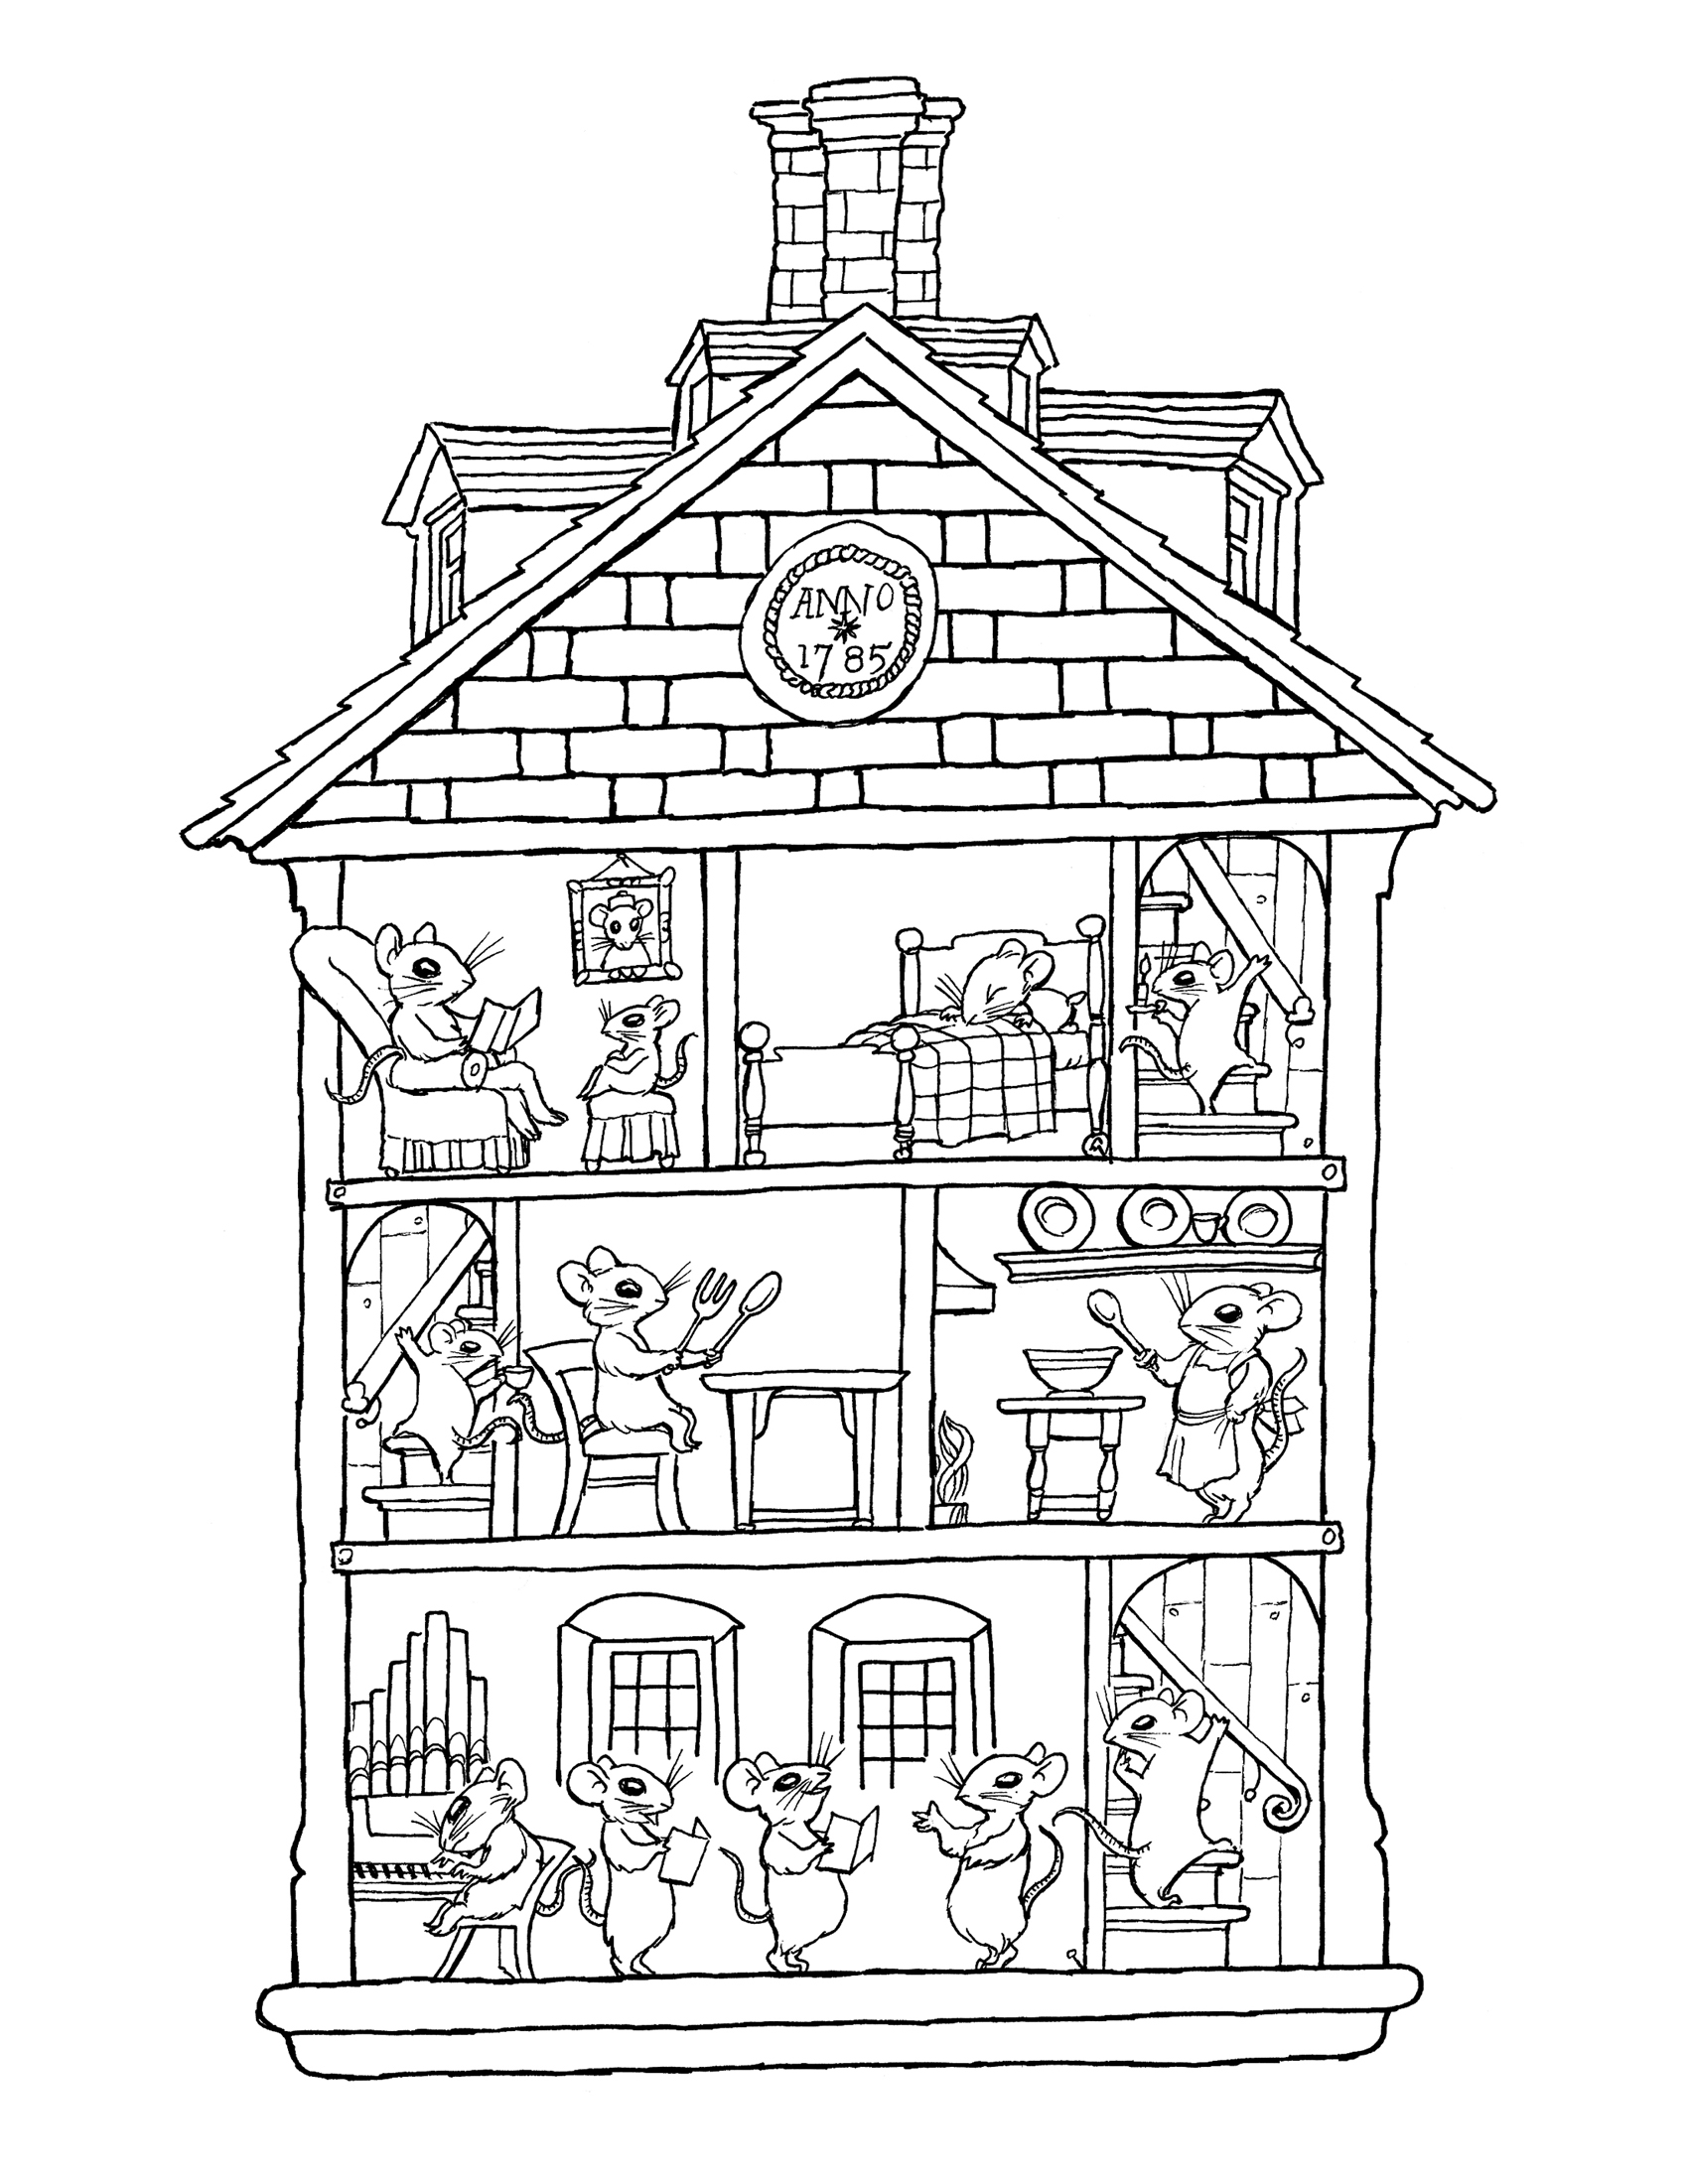 New house drawing at getdrawings free for personal use new 1700x2200 houses homes coloring pages for preschool kindergarten ibookread ePUb